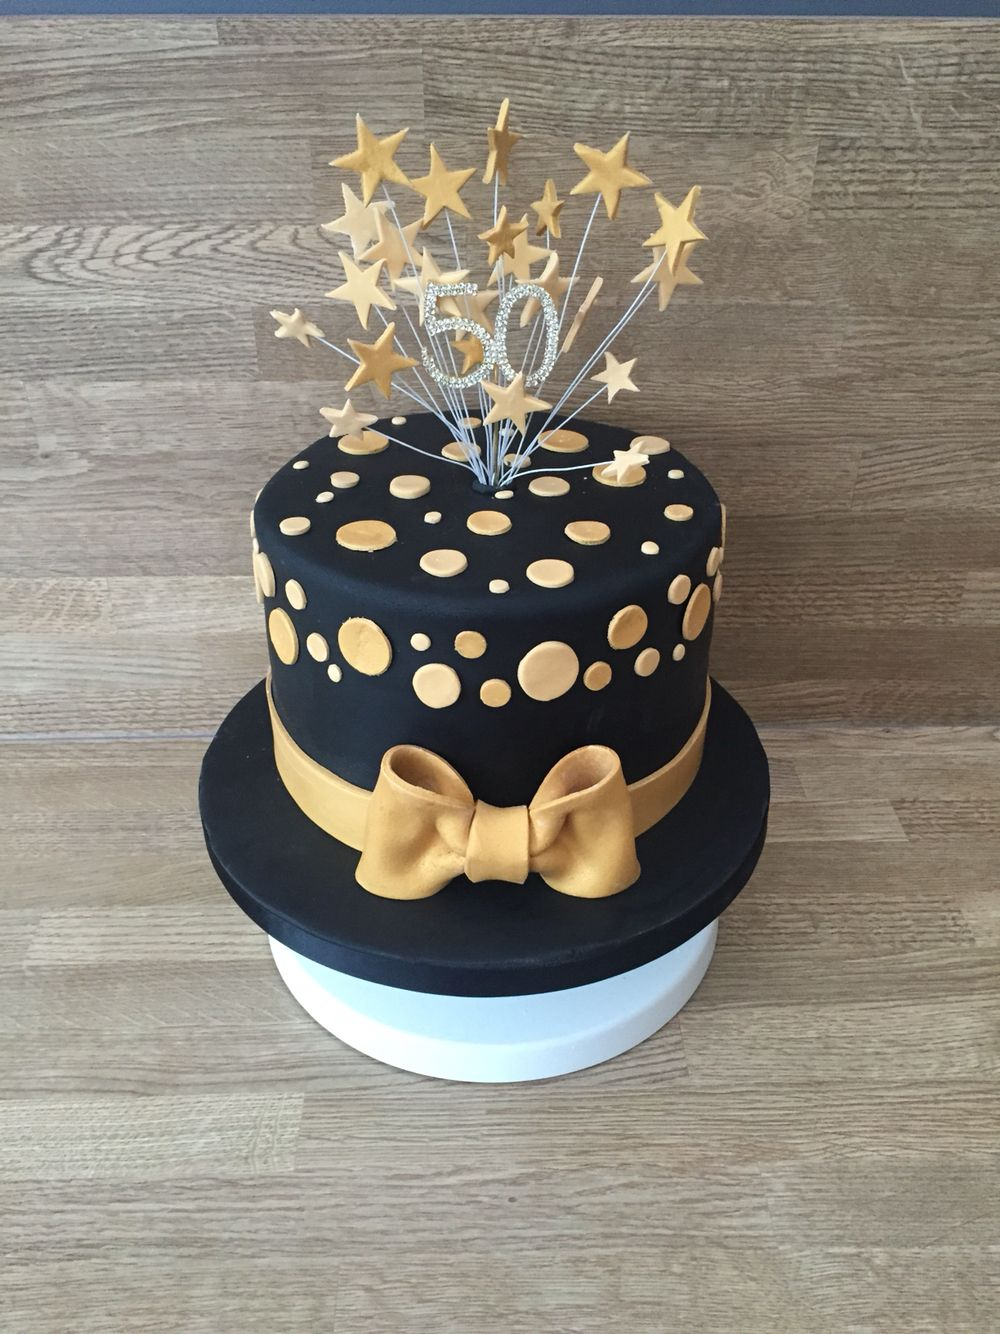 Birthday Cake Images Gold : Black and gold cake CAKES Pinterest Gold cake, Cake ...